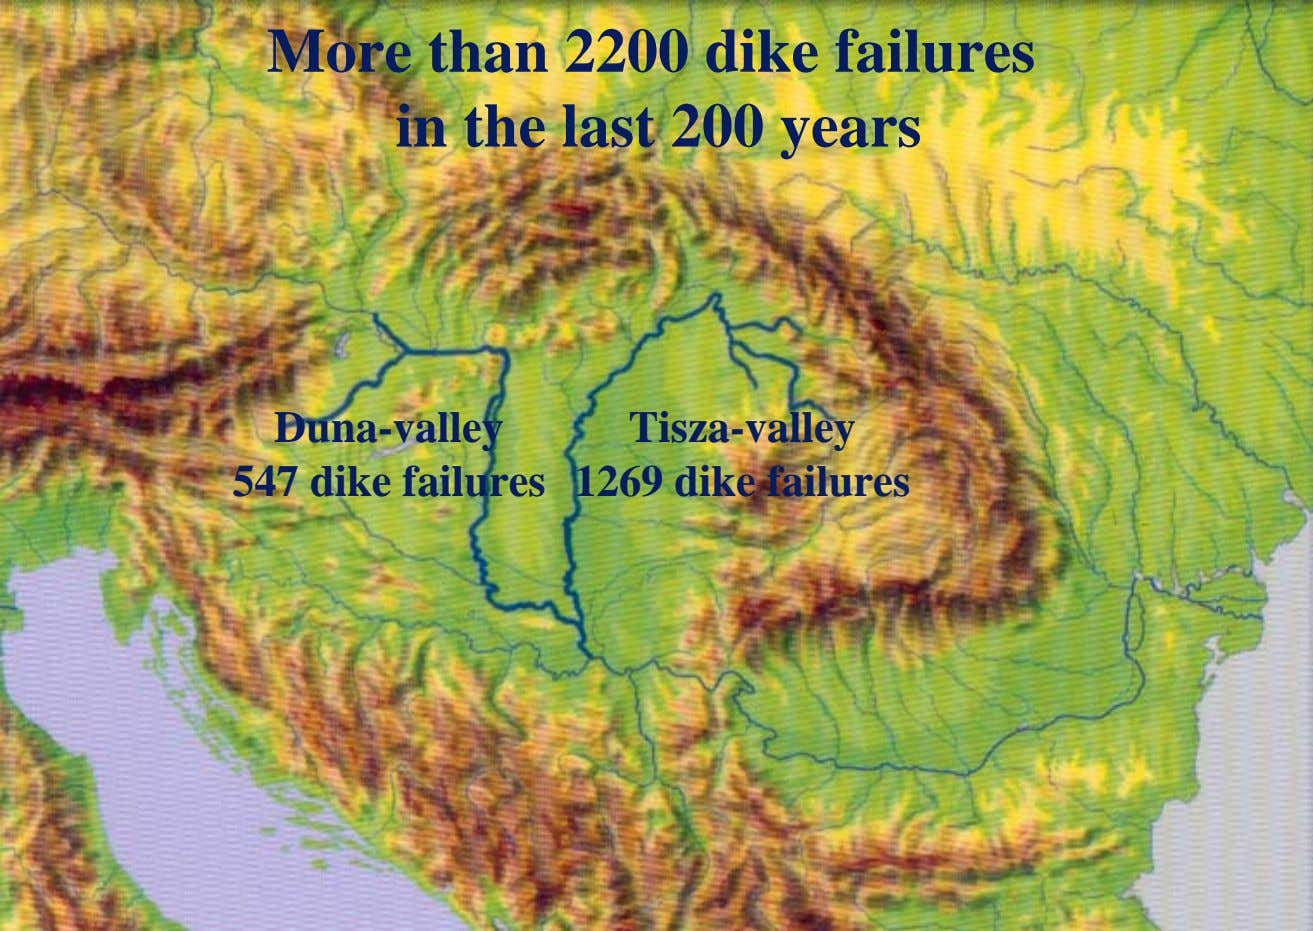 More than 2200 dike failures in the last 200 years Duna-valley 547 dike failures Tisza-valley